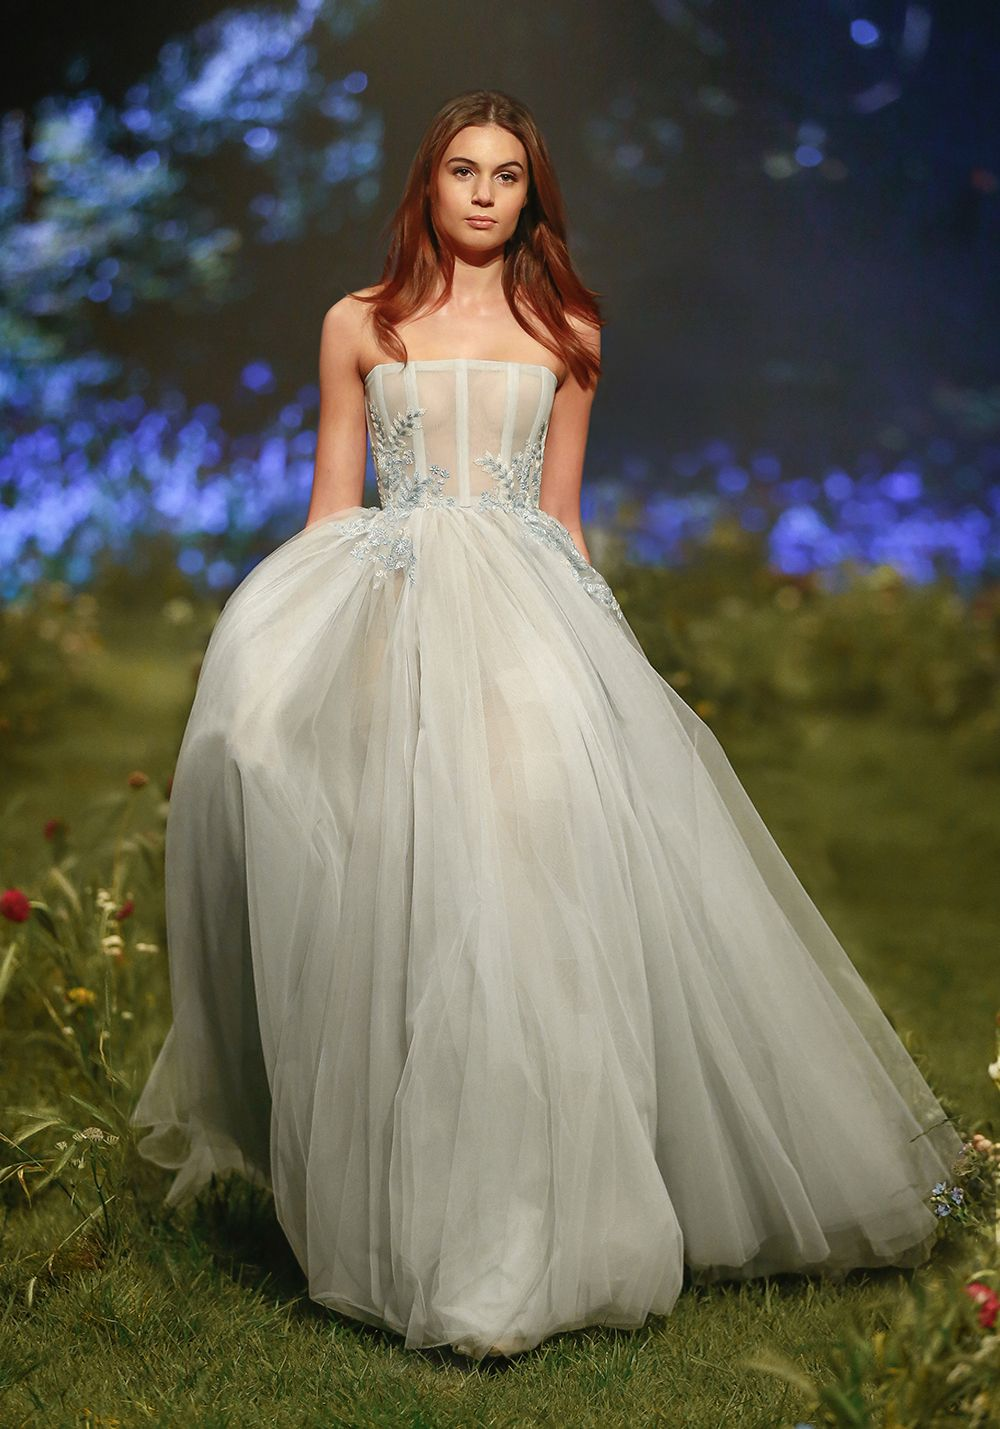 PSS/S1710 French tulle ball gown with sheer corset